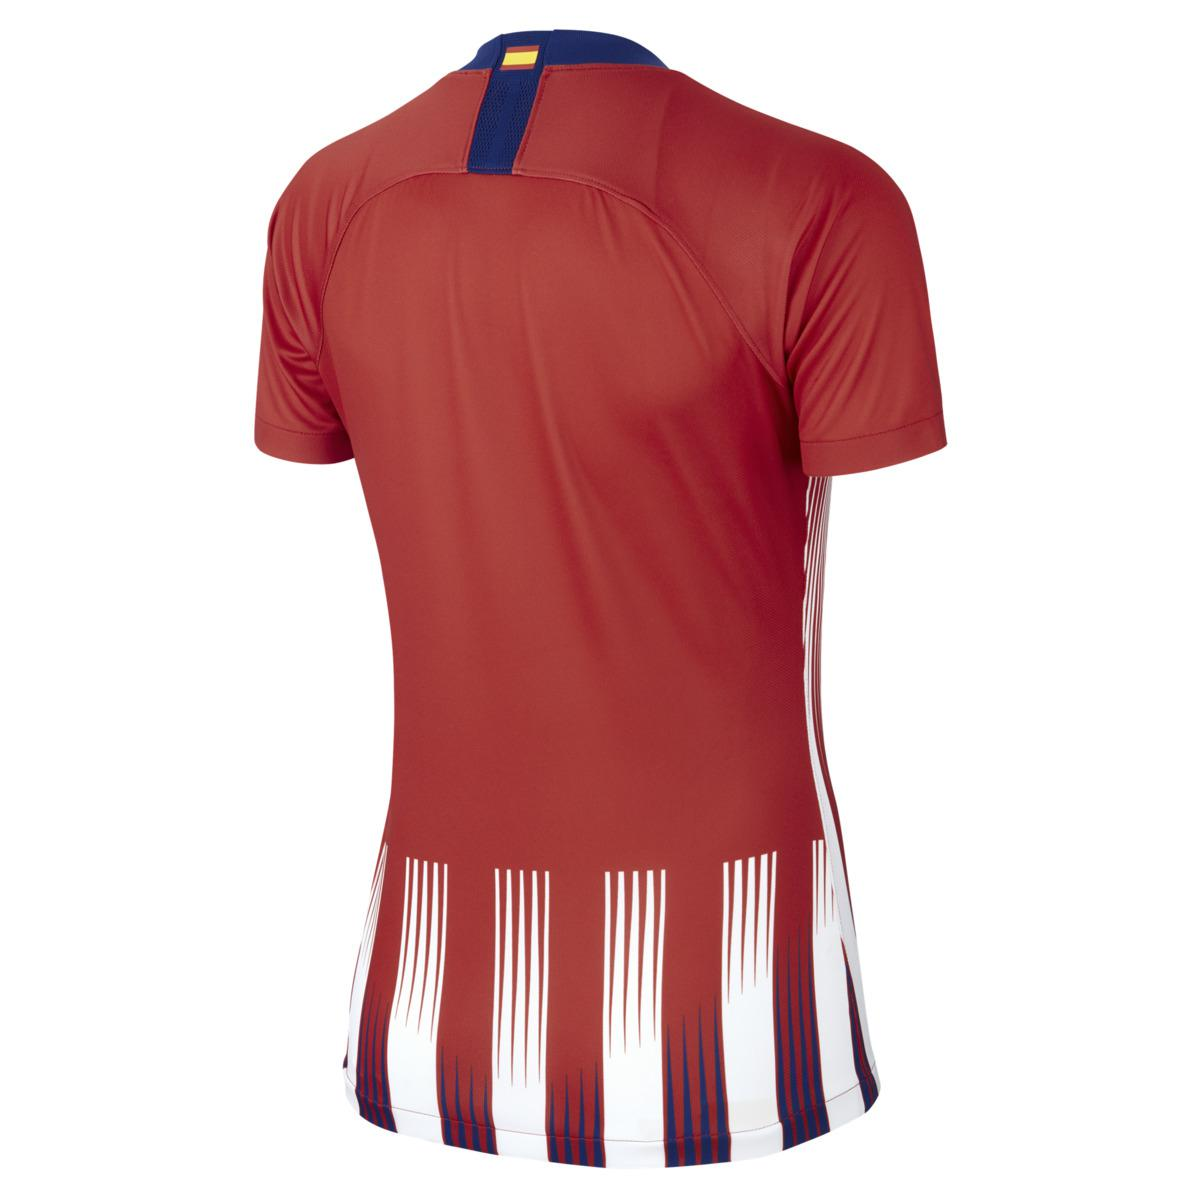 78ee61e49 Nike - Red 2018 19 Atlético De Madrid Stadium Home Football Shirt - Lyst.  View fullscreen